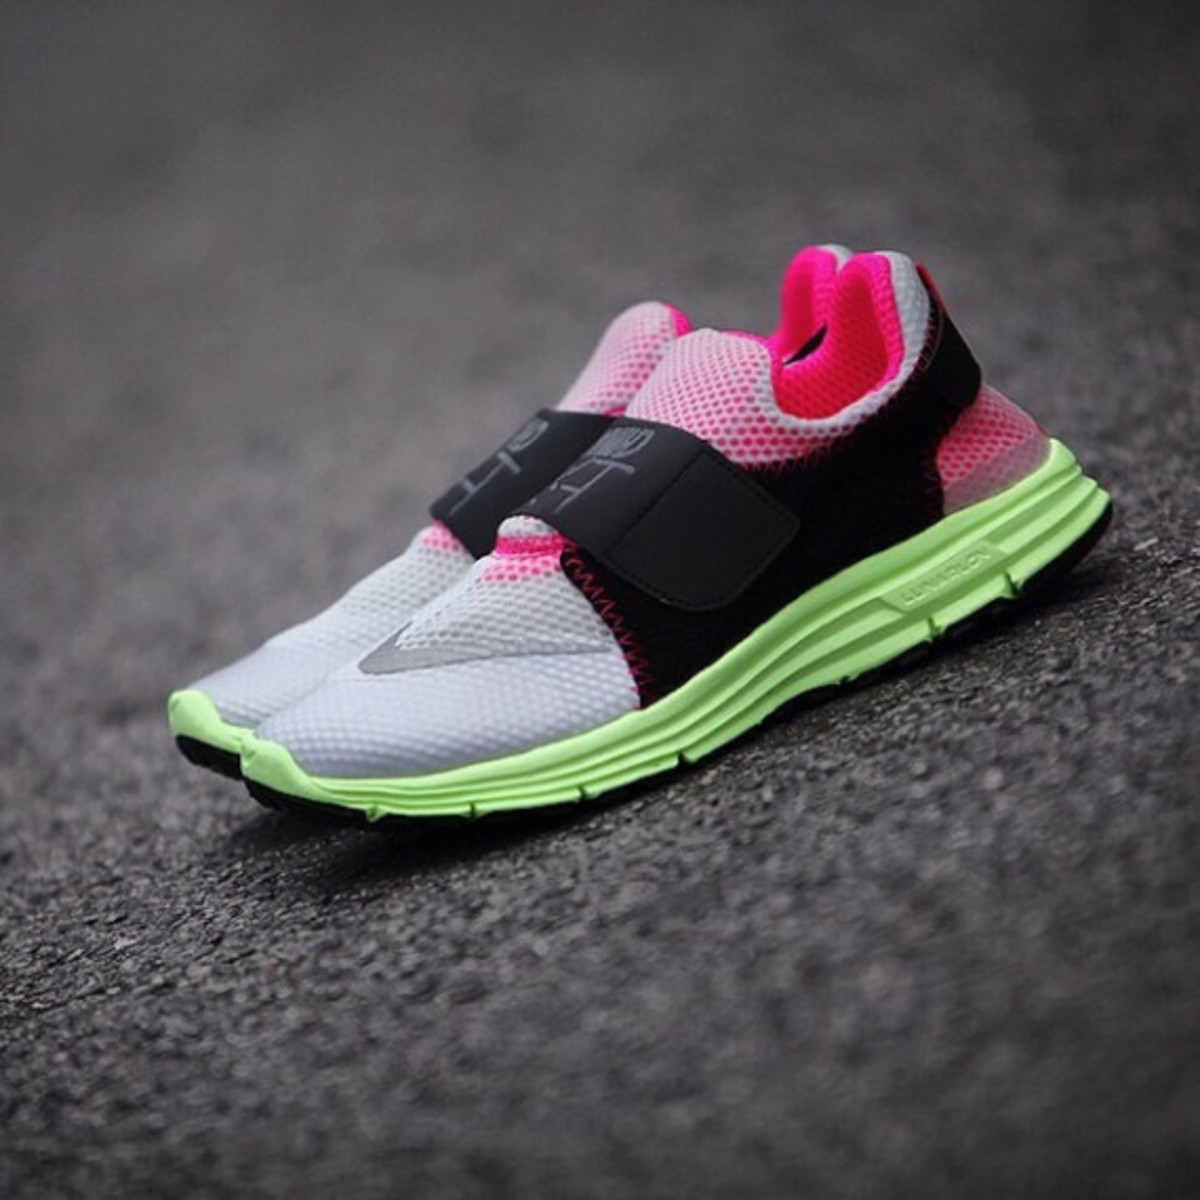 """Nike Sportswear """"City Pack: Shanghai"""" Collection - 6"""